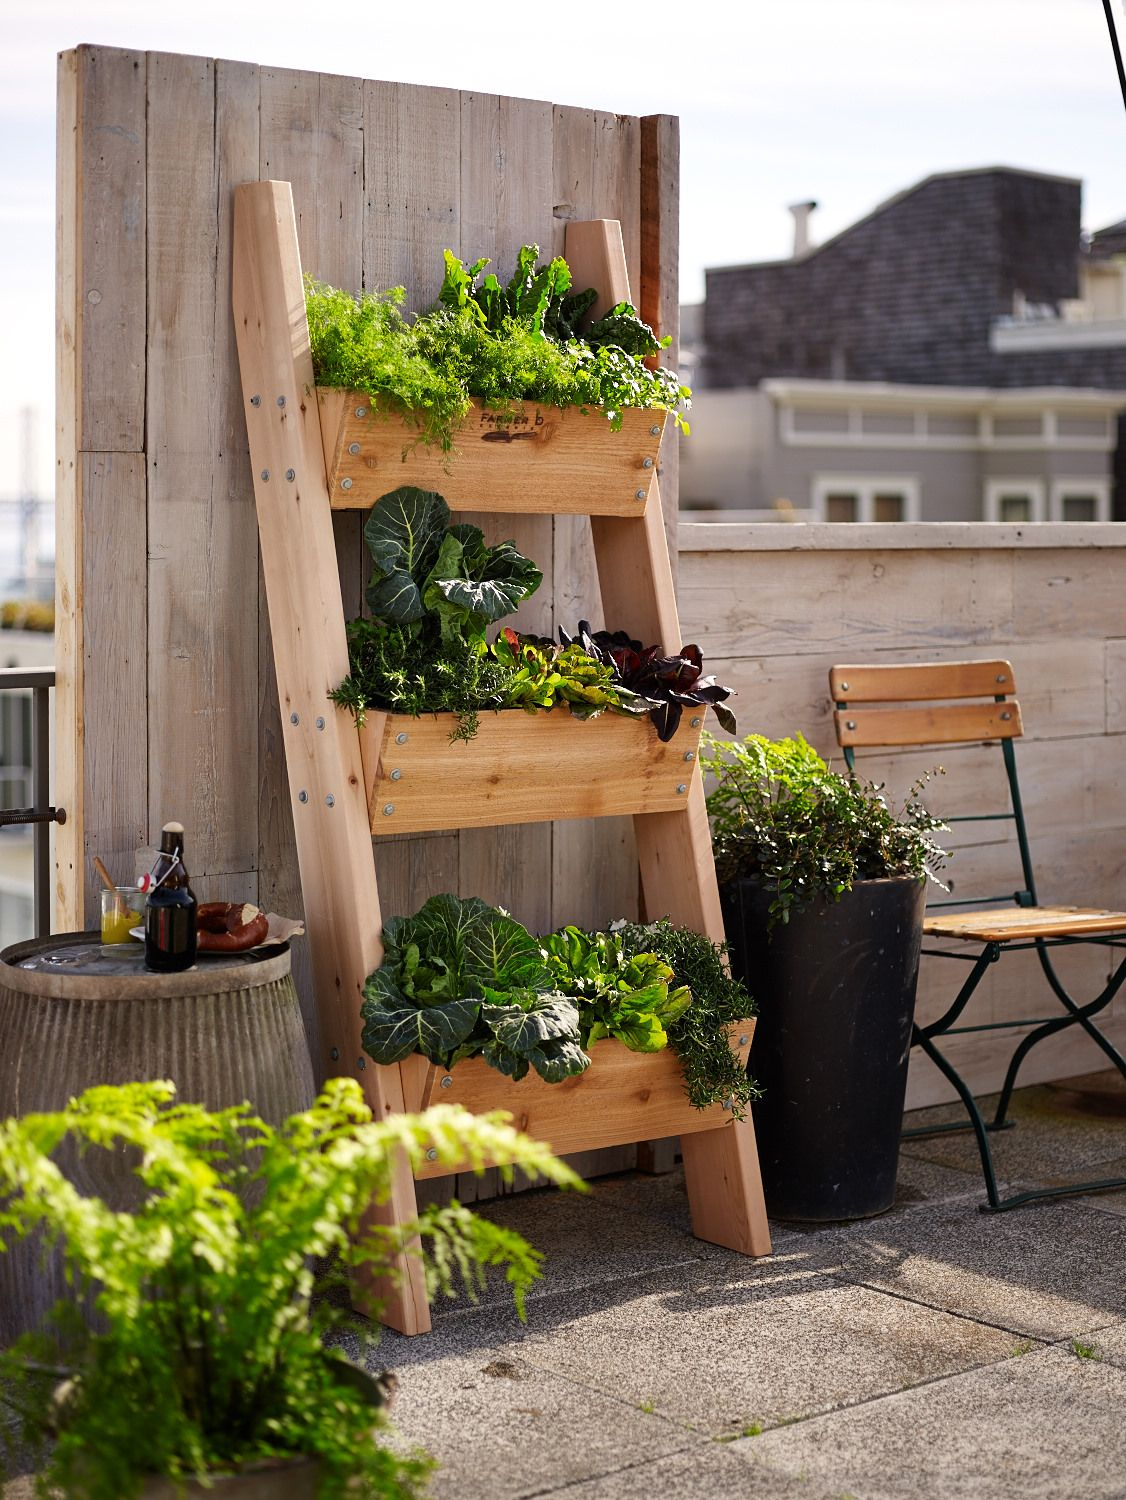 Grow your own herbs and vegetables in compact outdoor